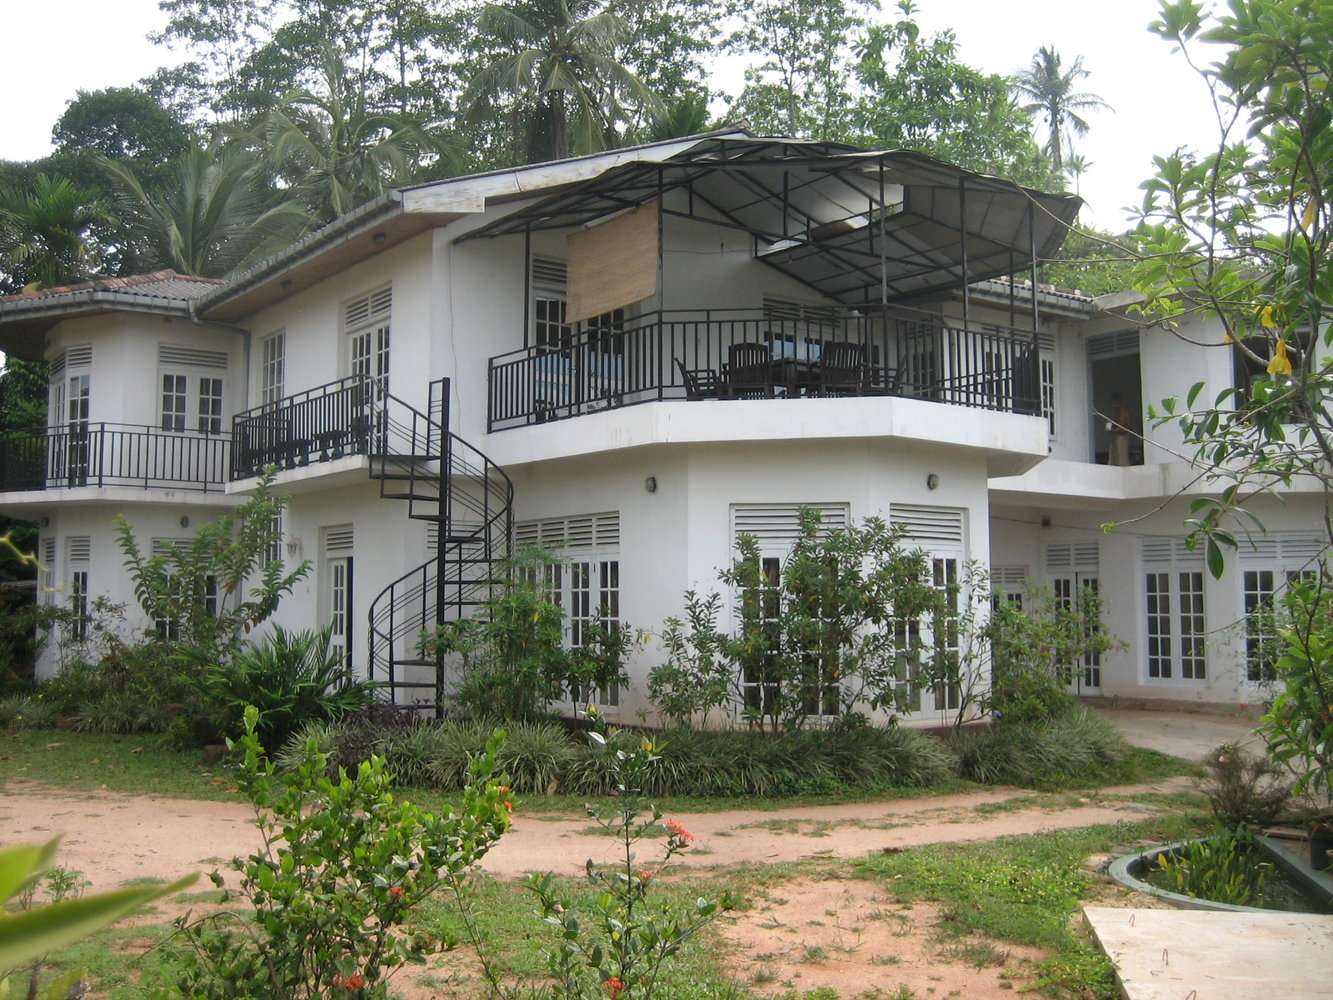 The Spica. Accommodation, guest house in Kandy